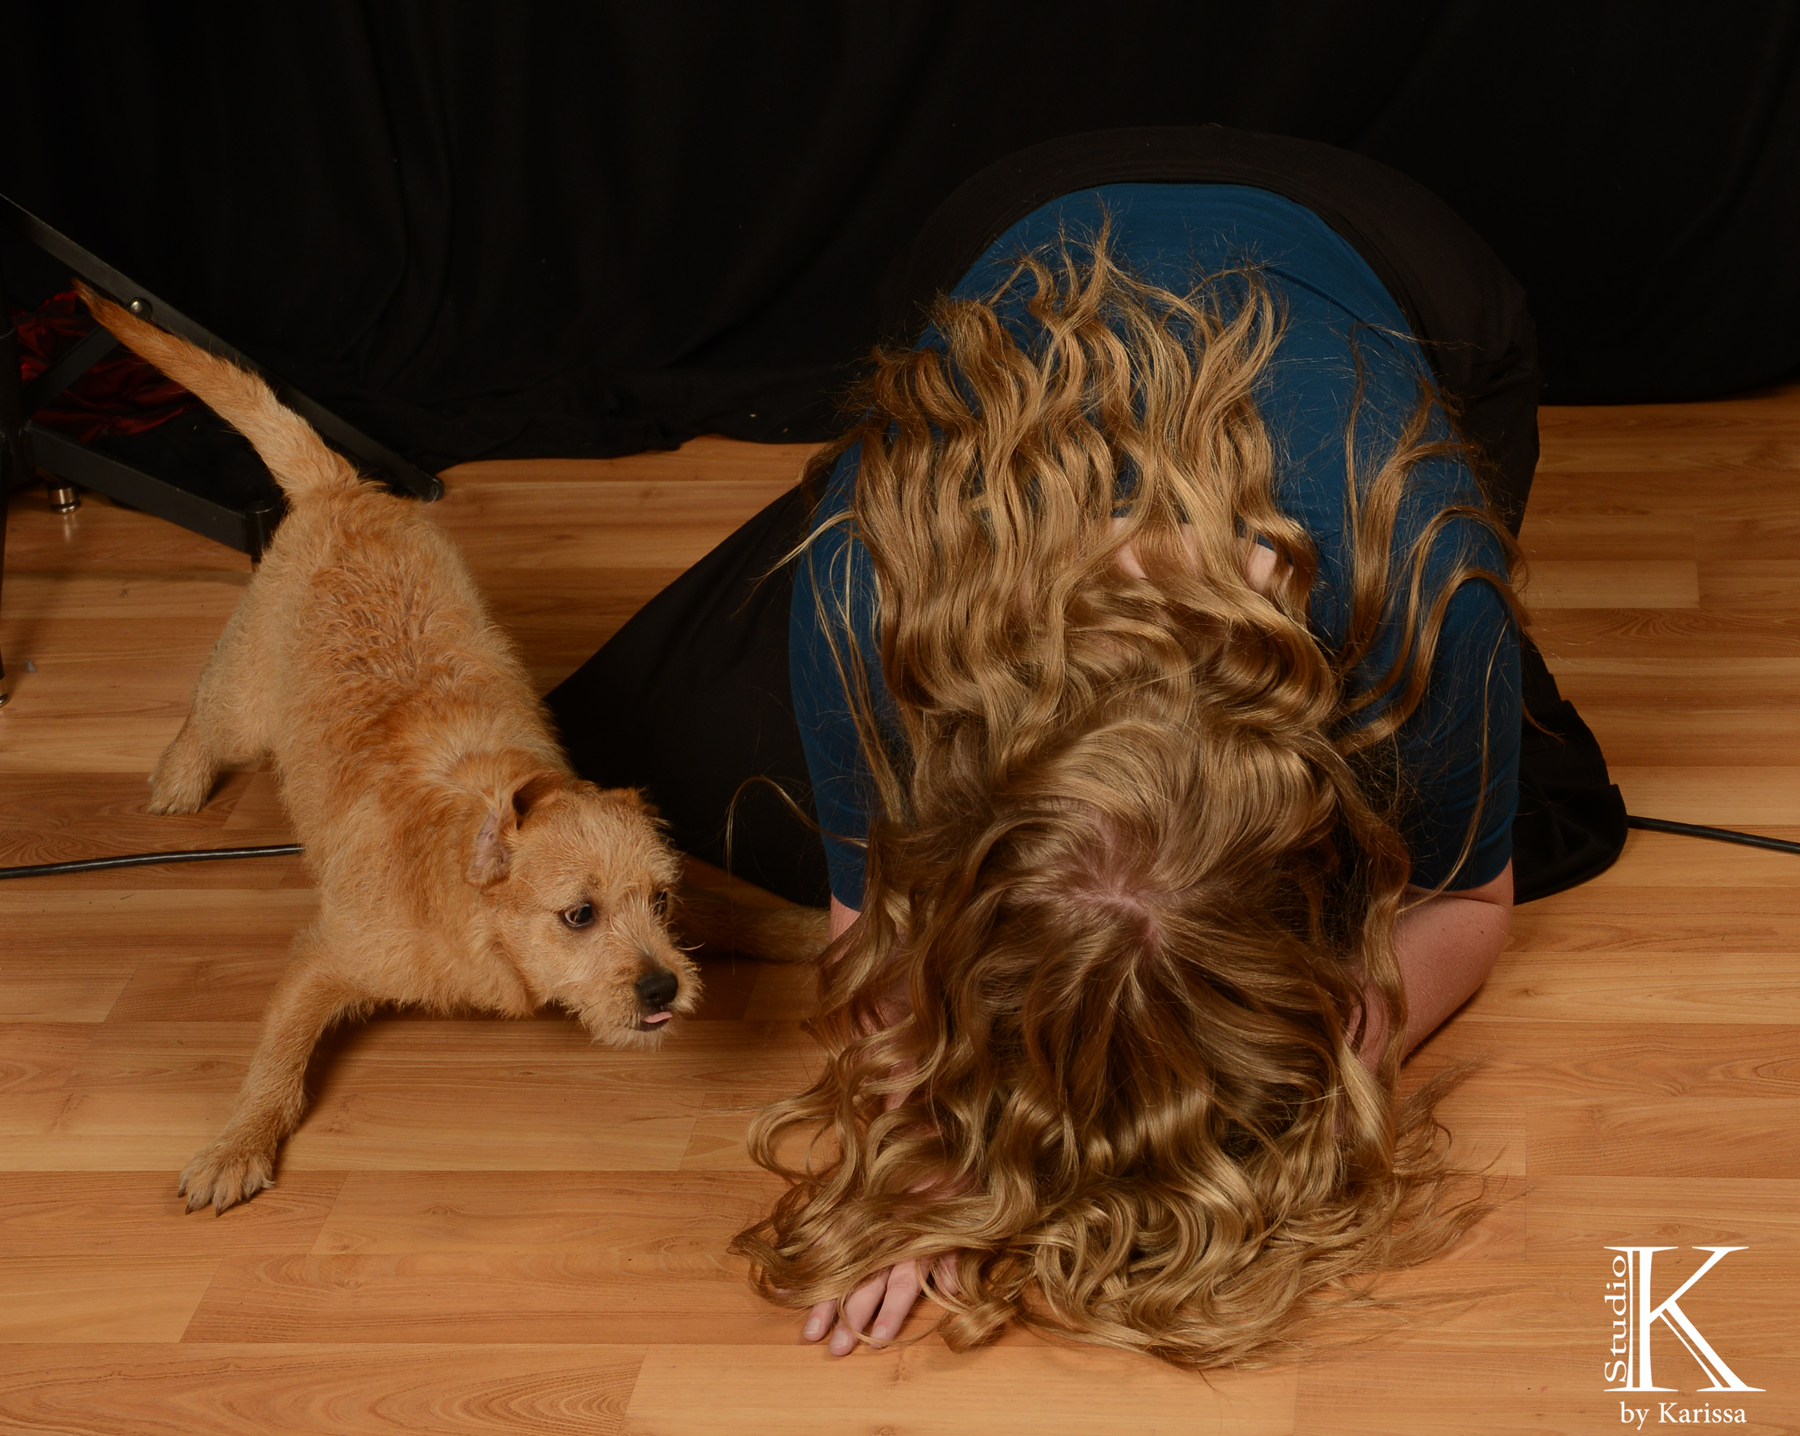 Keely was doing a dance routine that started like this and my dog Rosie wanted to dance too! :)